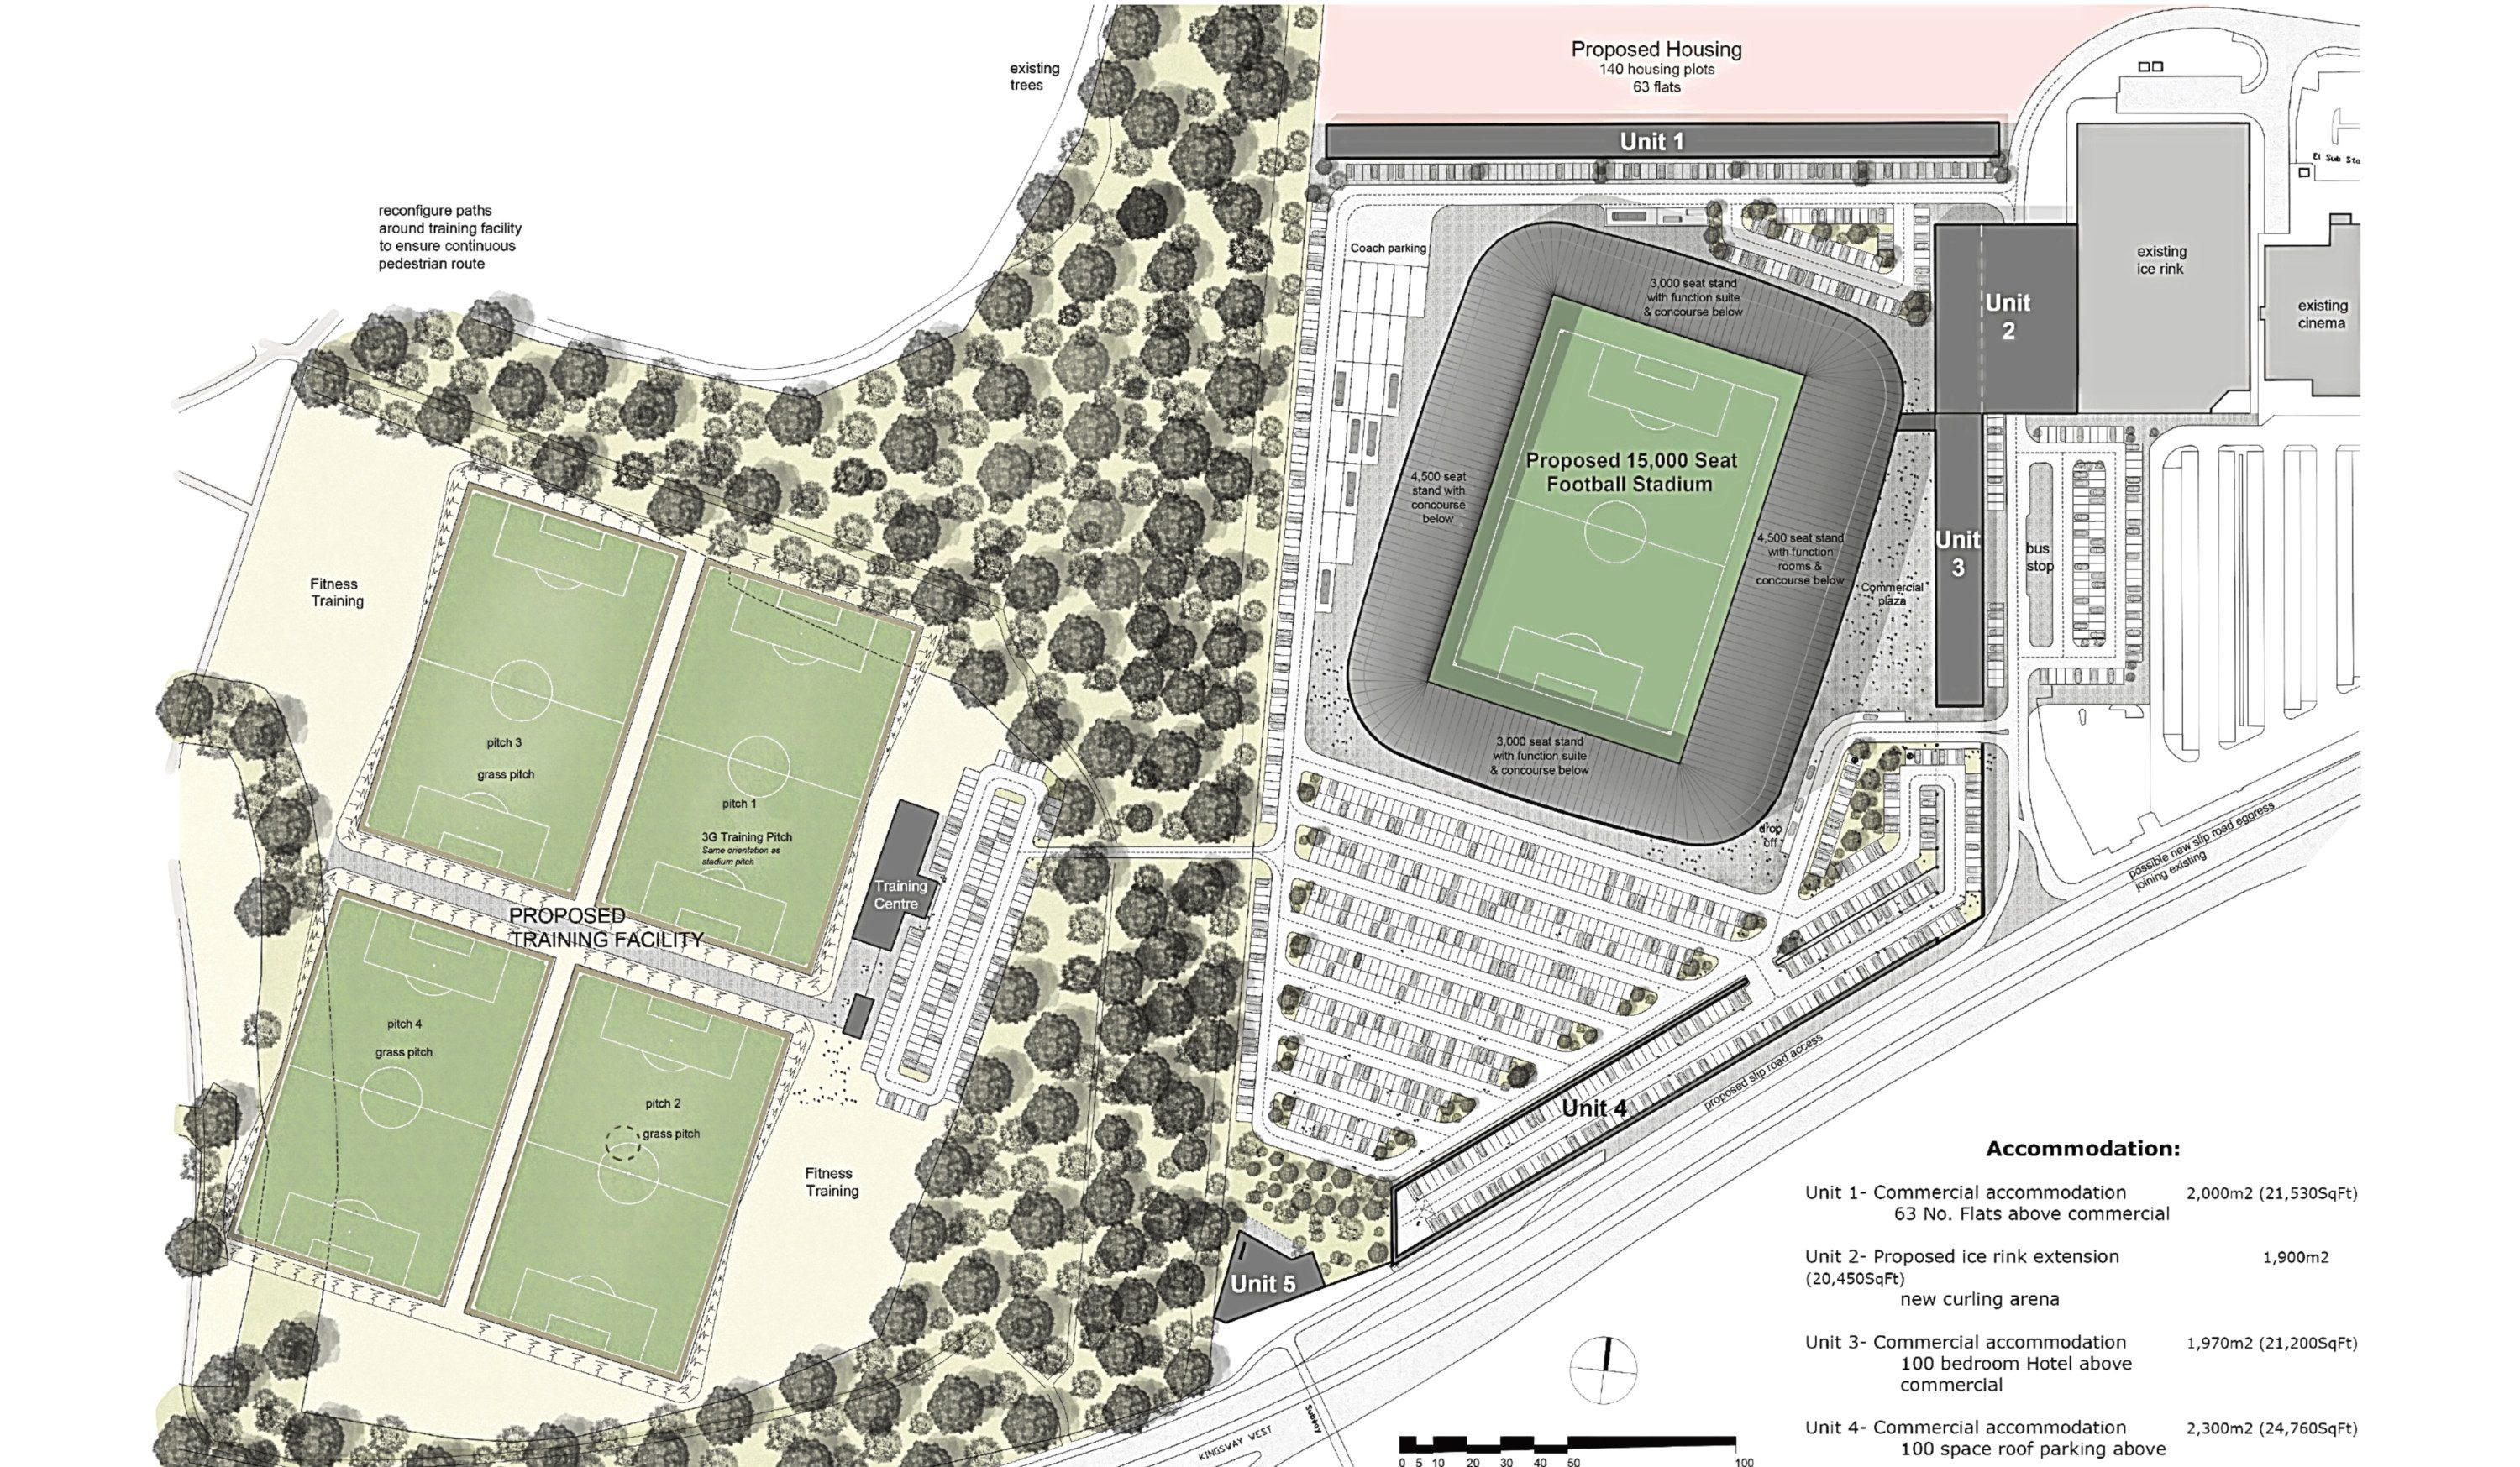 An overview of the proposed plans for Dundee FC's new stadium